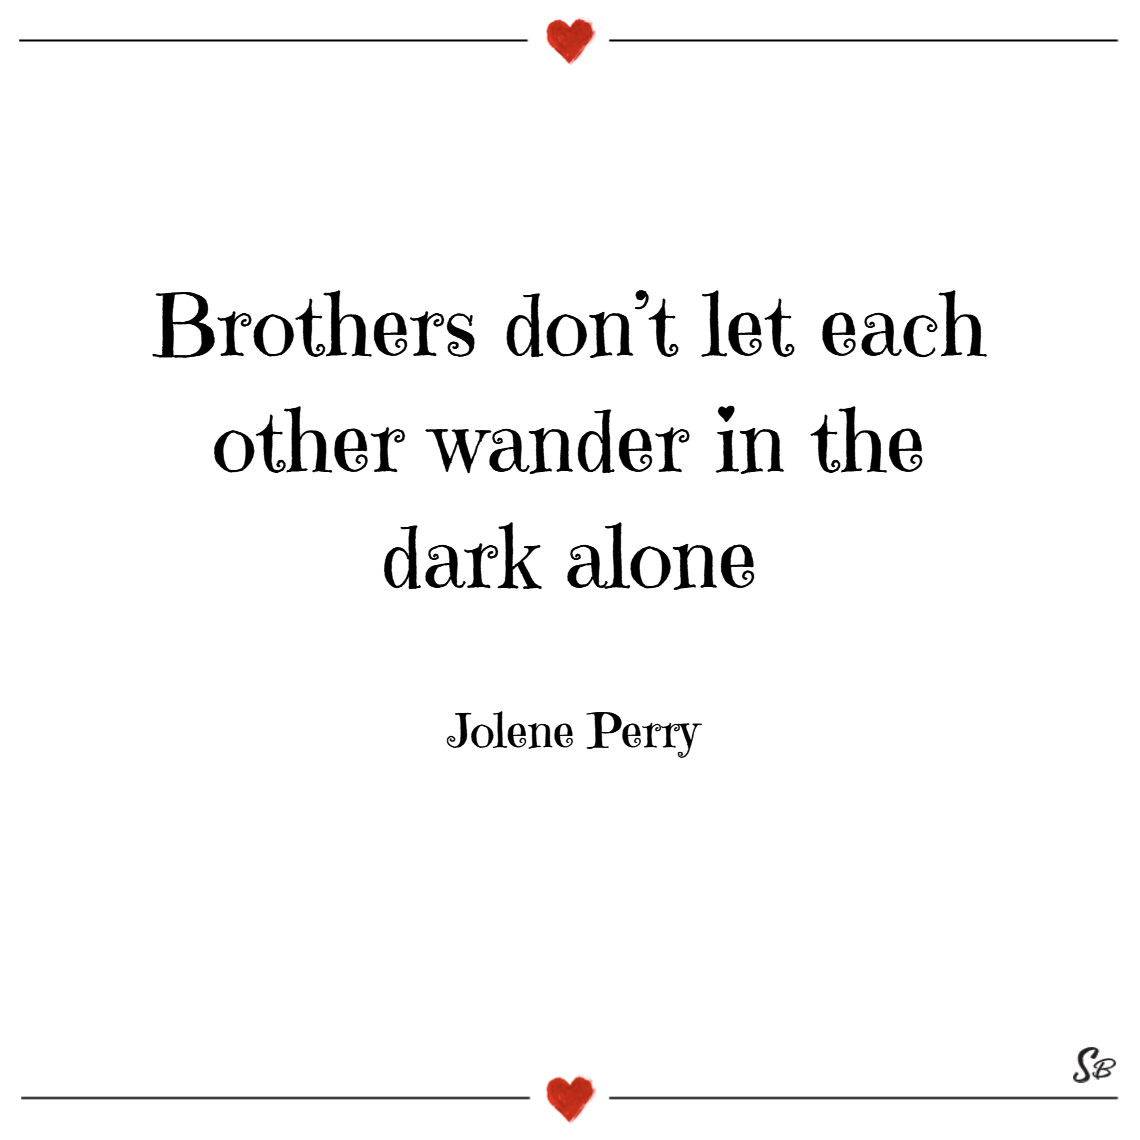 Brothers don't let each other wander in the dark alone. – jolene perry (2)